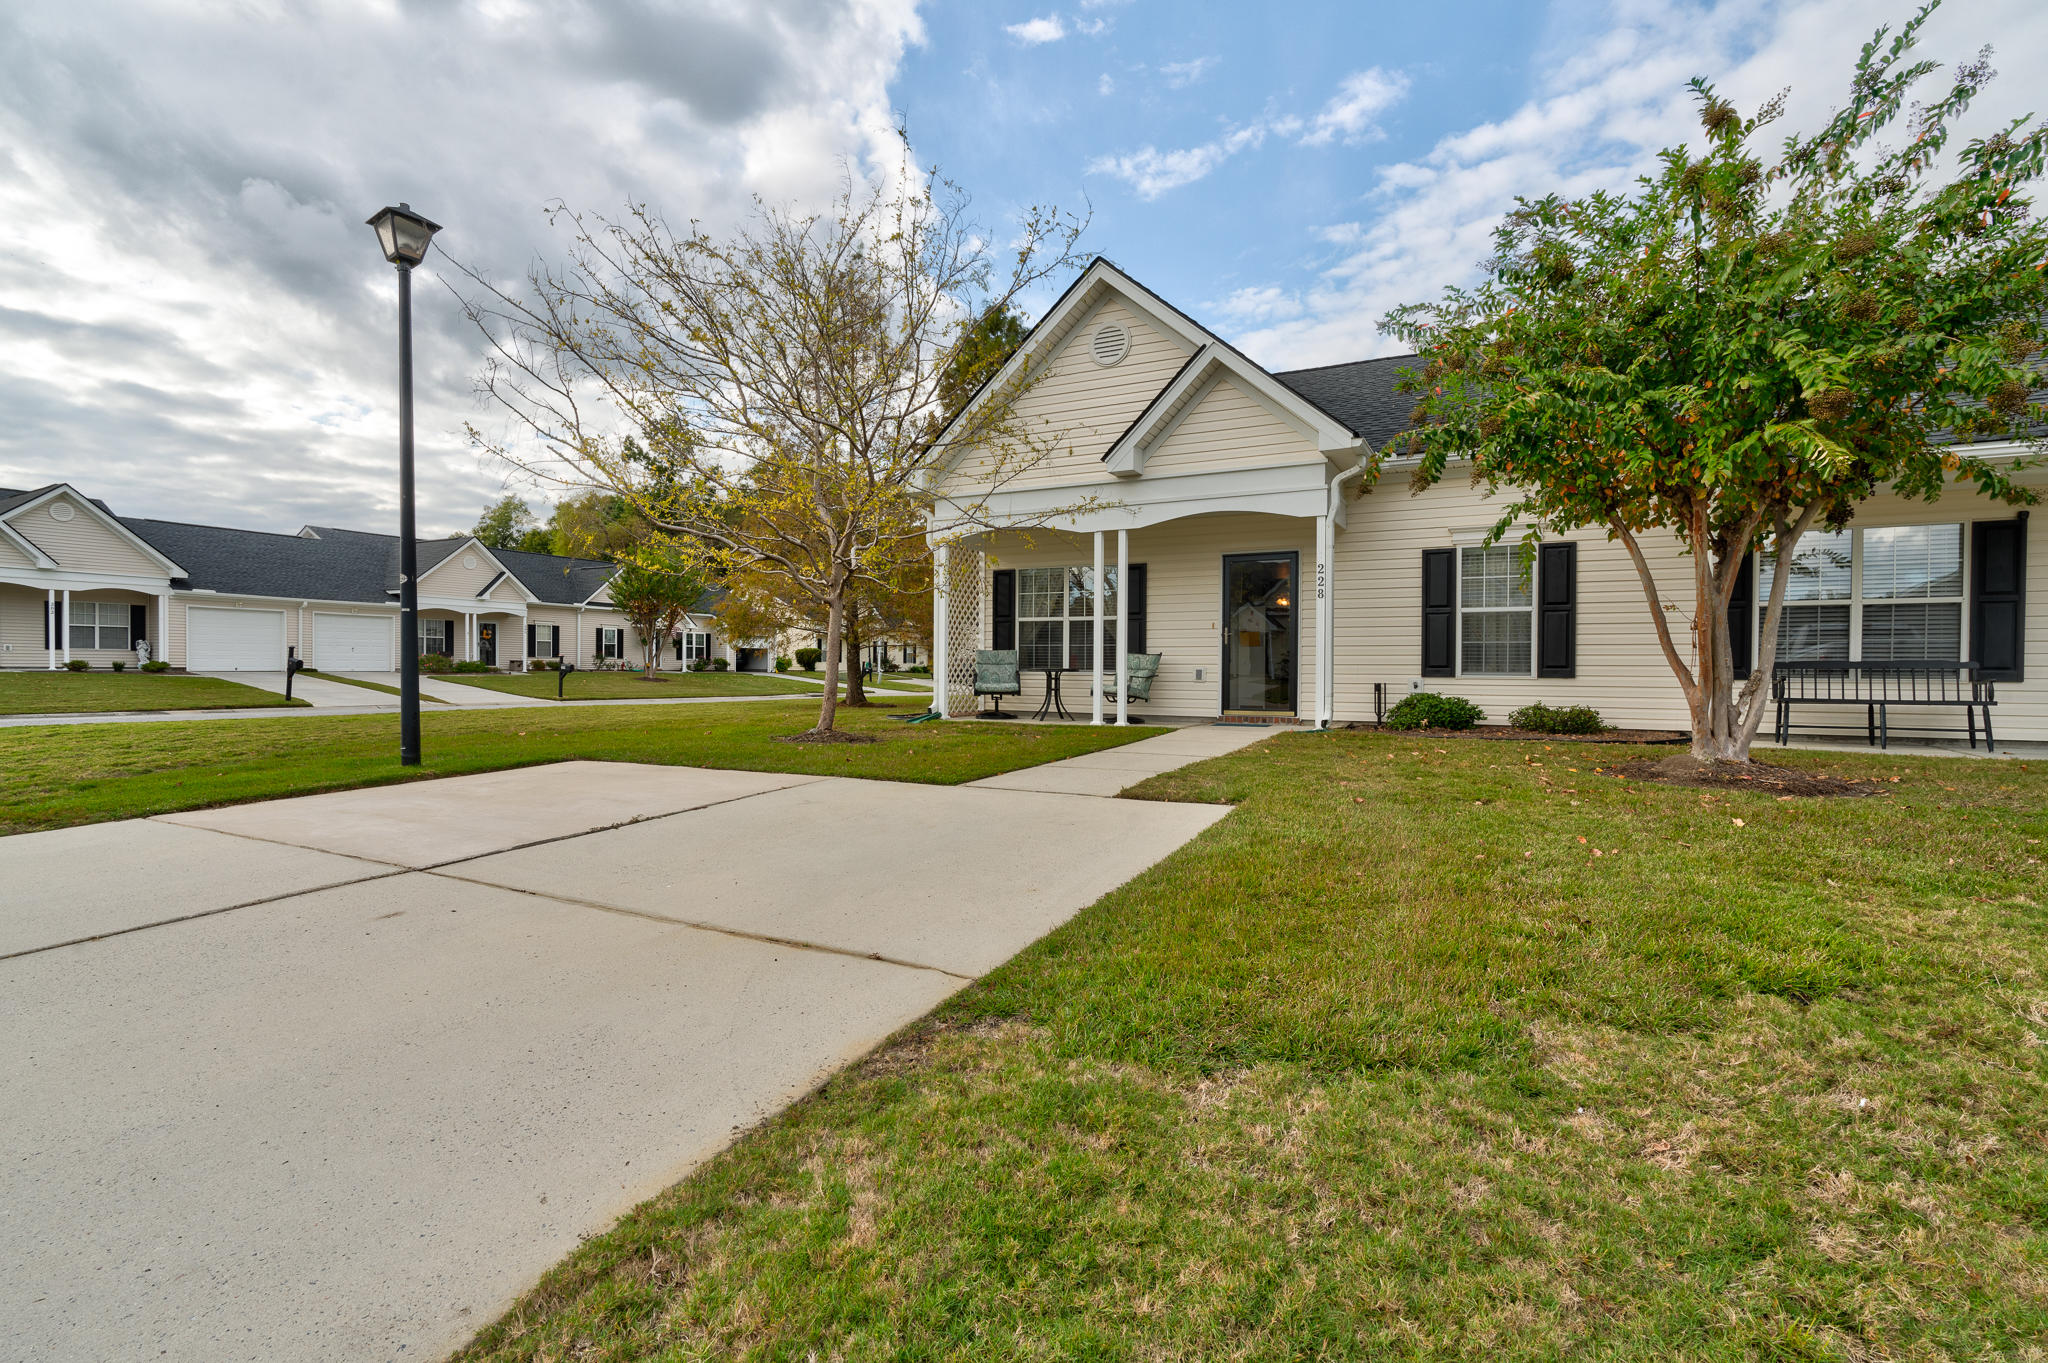 Oakbrook Commons Homes For Sale - 228 Hardee, Summerville, SC - 8